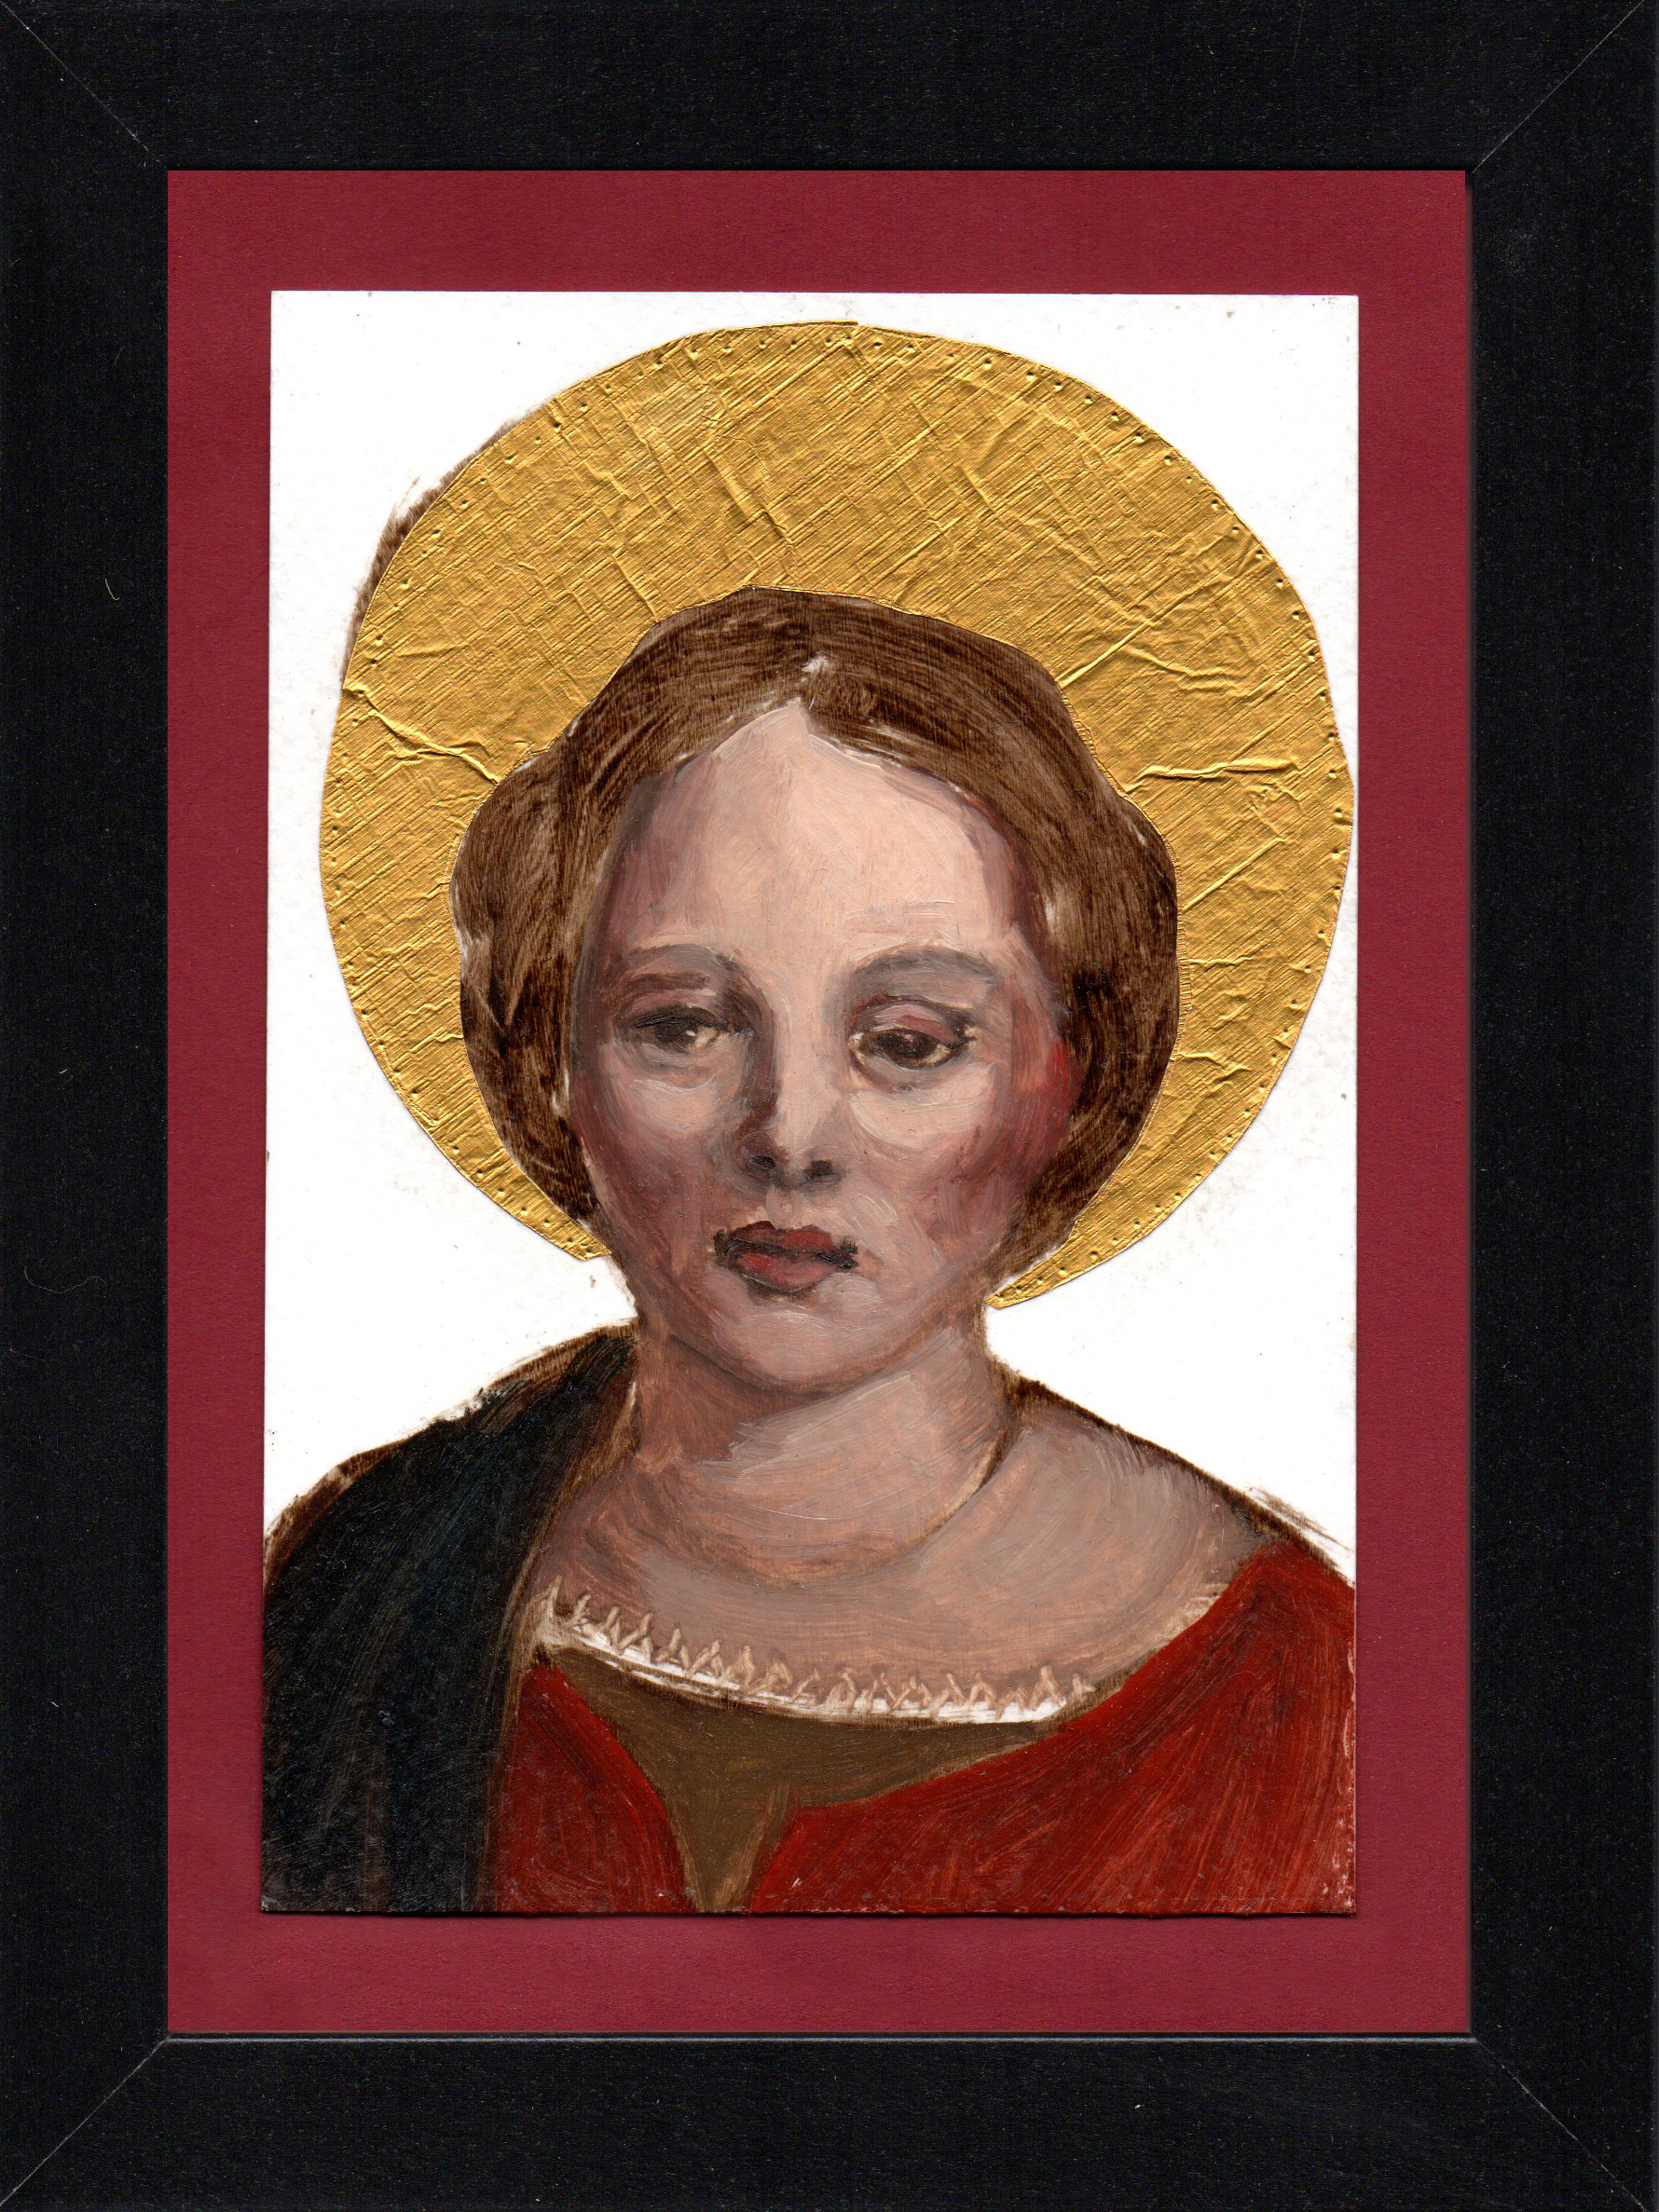 "Postcard Saint 10, oil & gold foil on paper 10.5 x 15 cm (4"" x 6""), 2016"